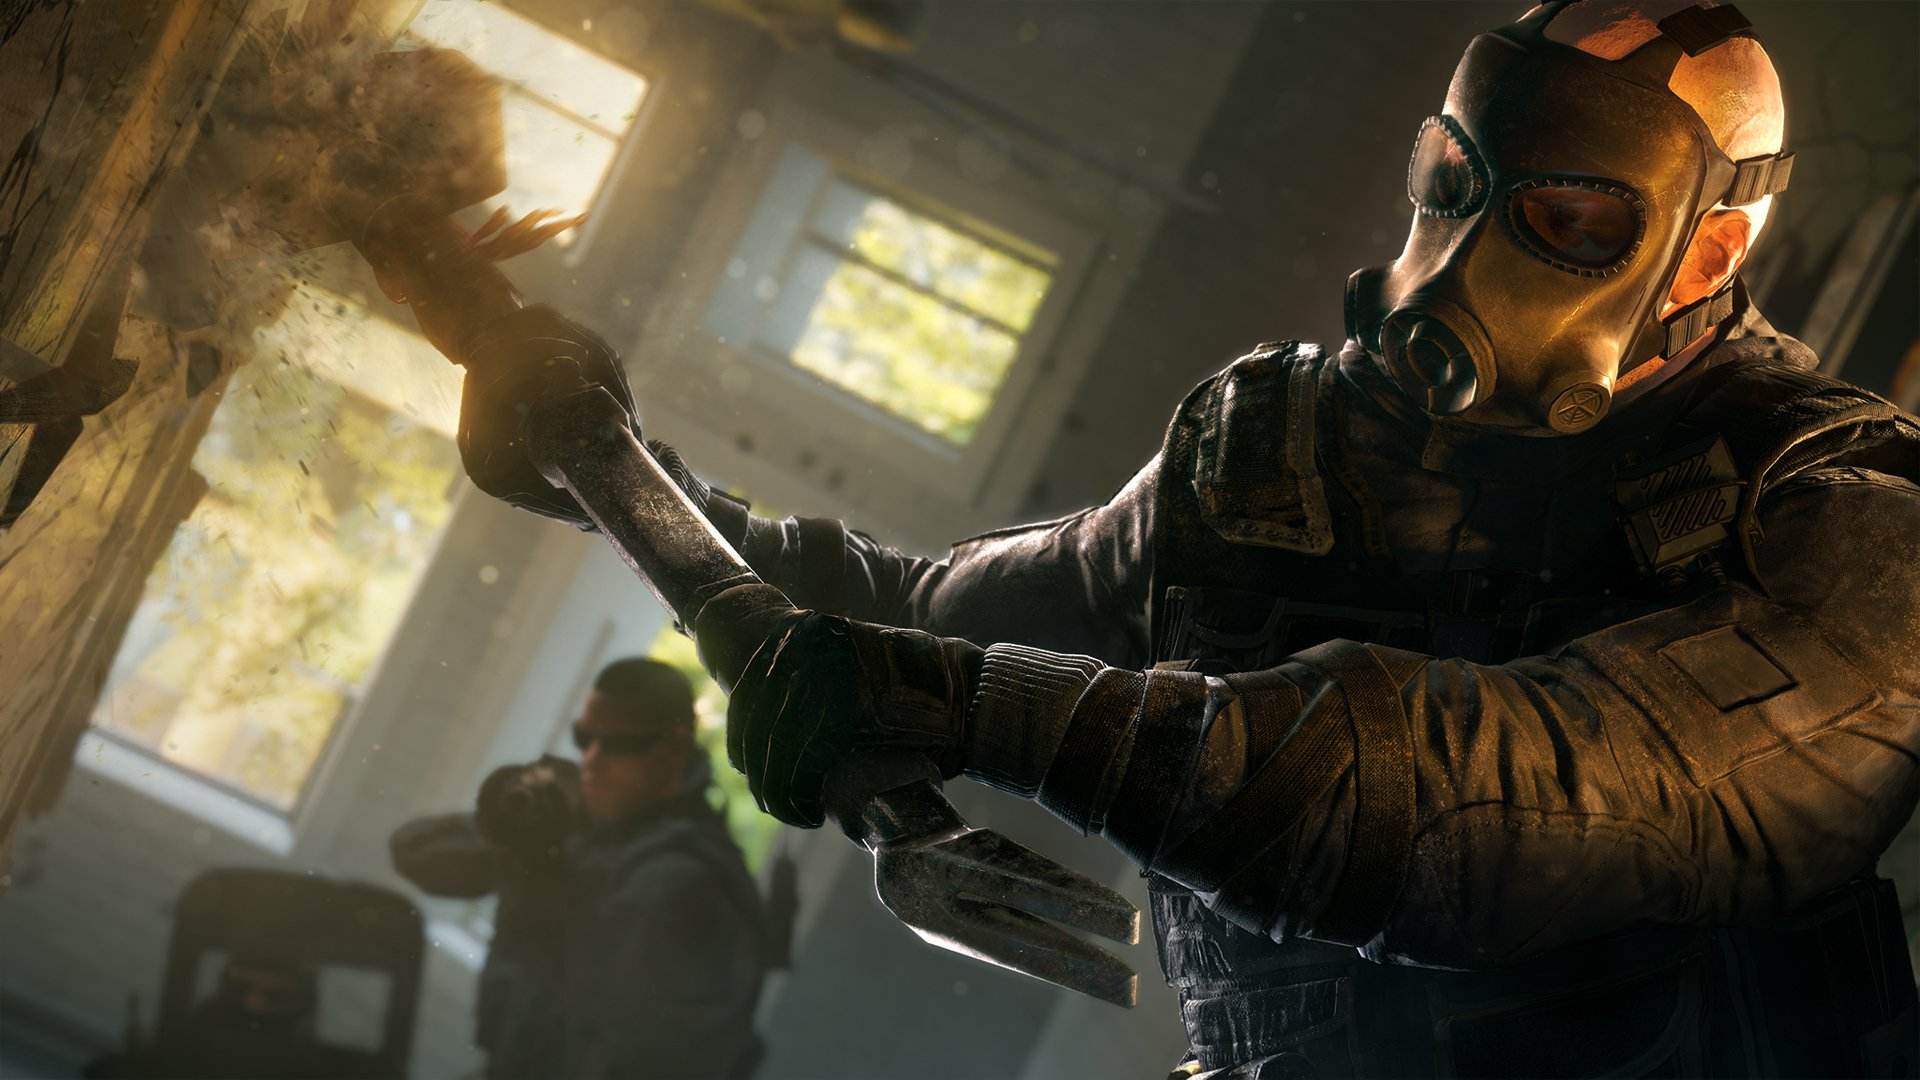 Video Game - Tom Clancy's Rainbow Six: Siege  Sledge (Tom Clancy's Rainbow Six: Siege) Bakgrund